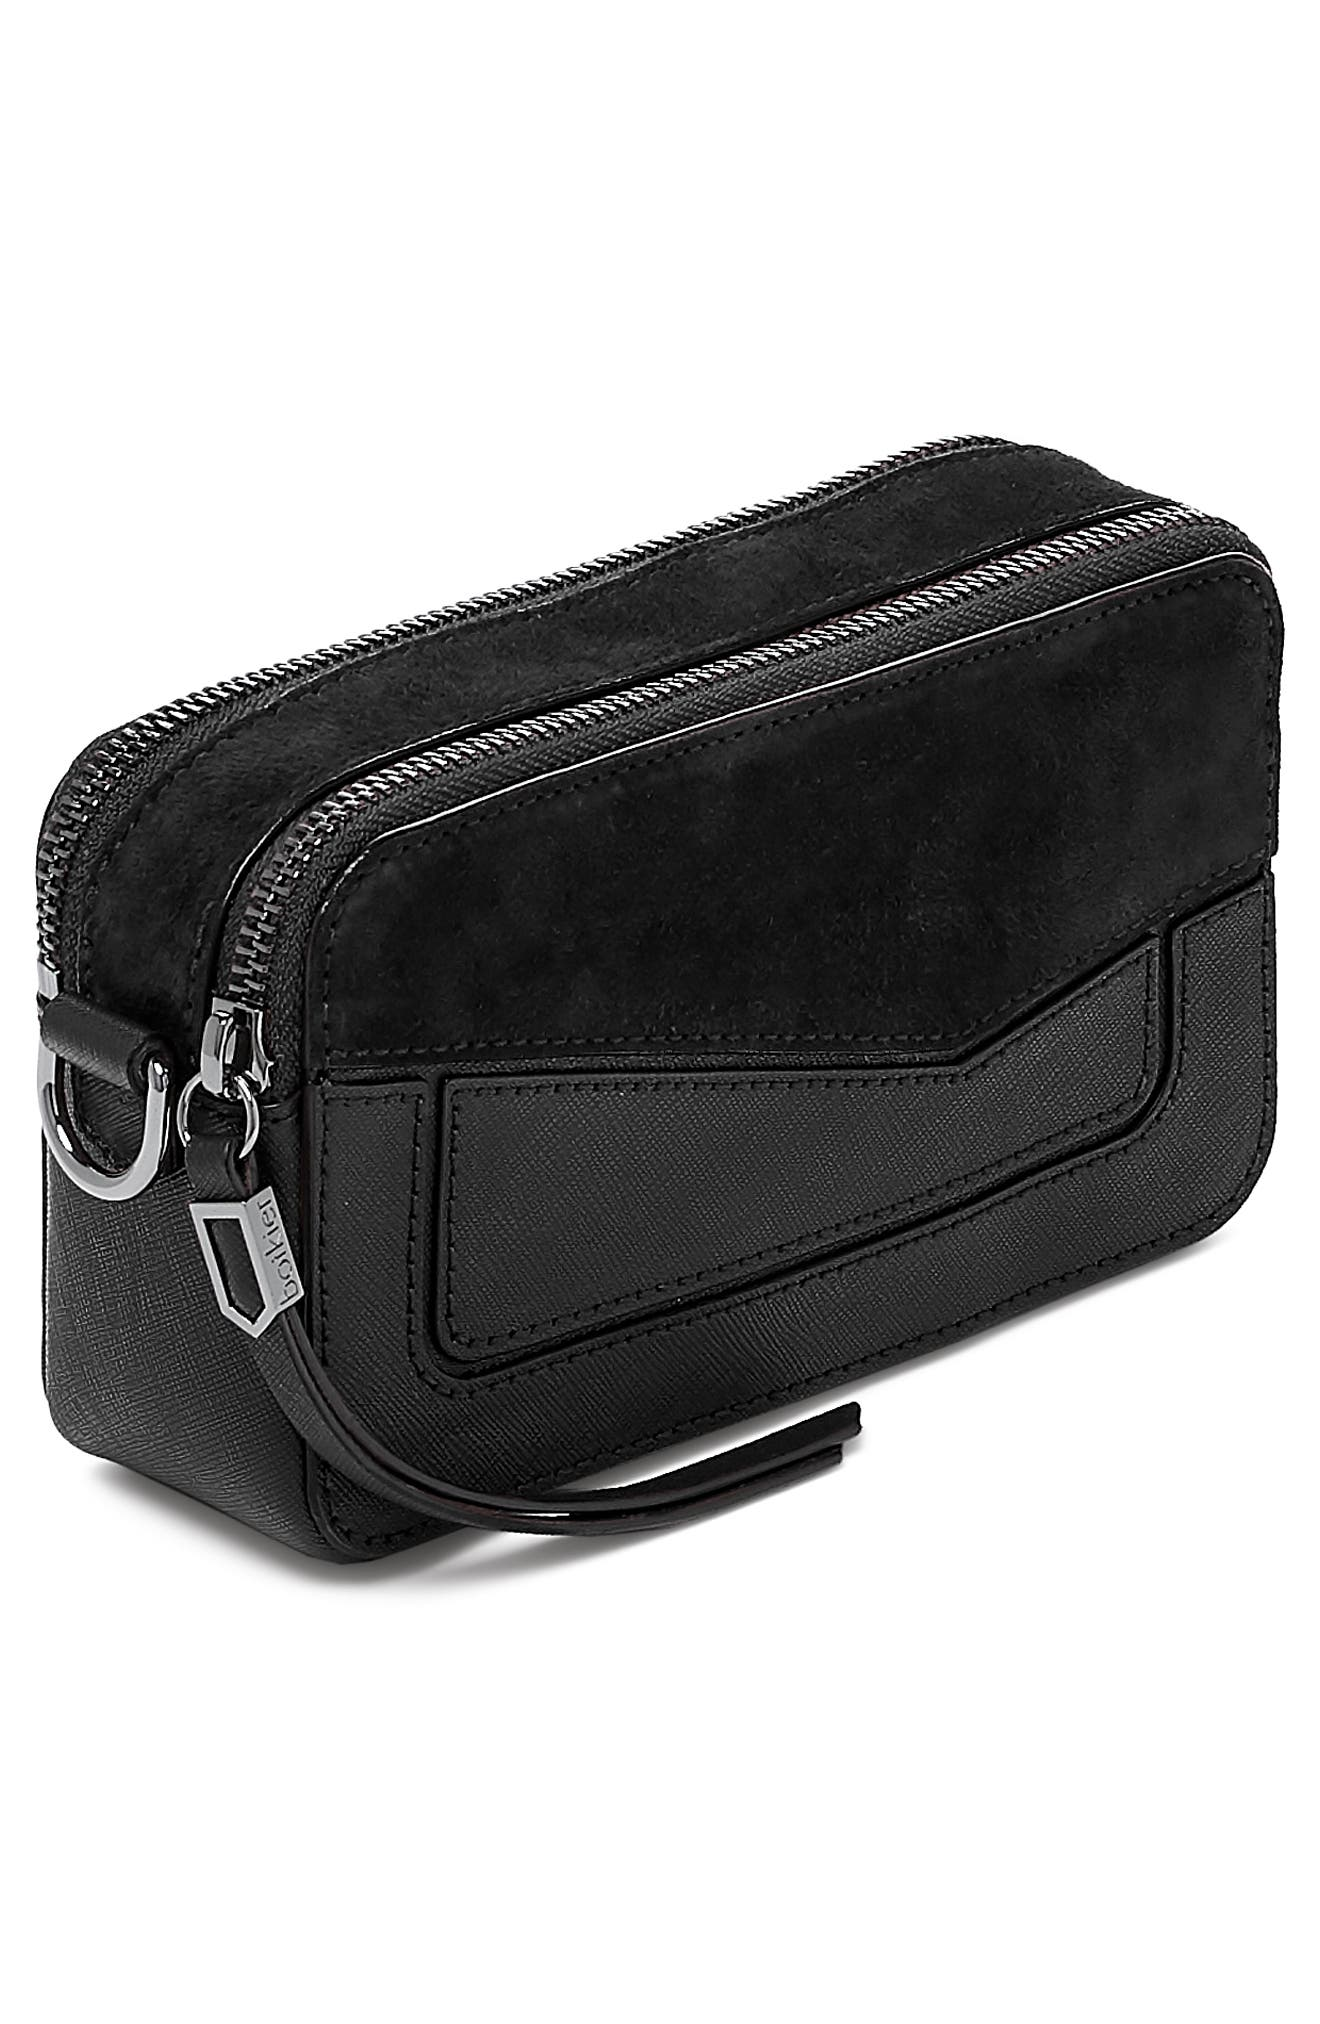 Cobble Hill Mini Crossbody Camera Bag,                             Alternate thumbnail 4, color,                             BLACK